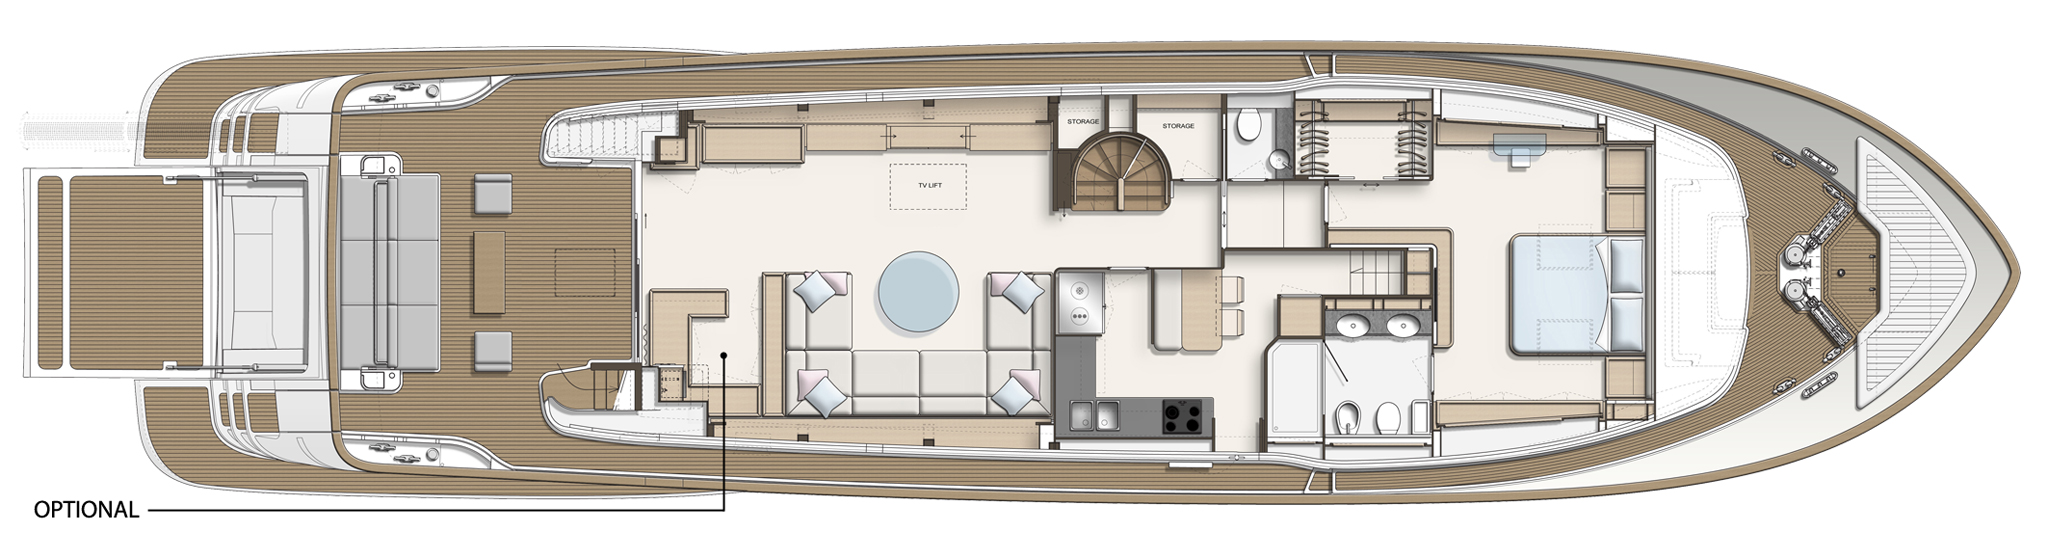 Custom Line Navetta 28 Layout (img-4)